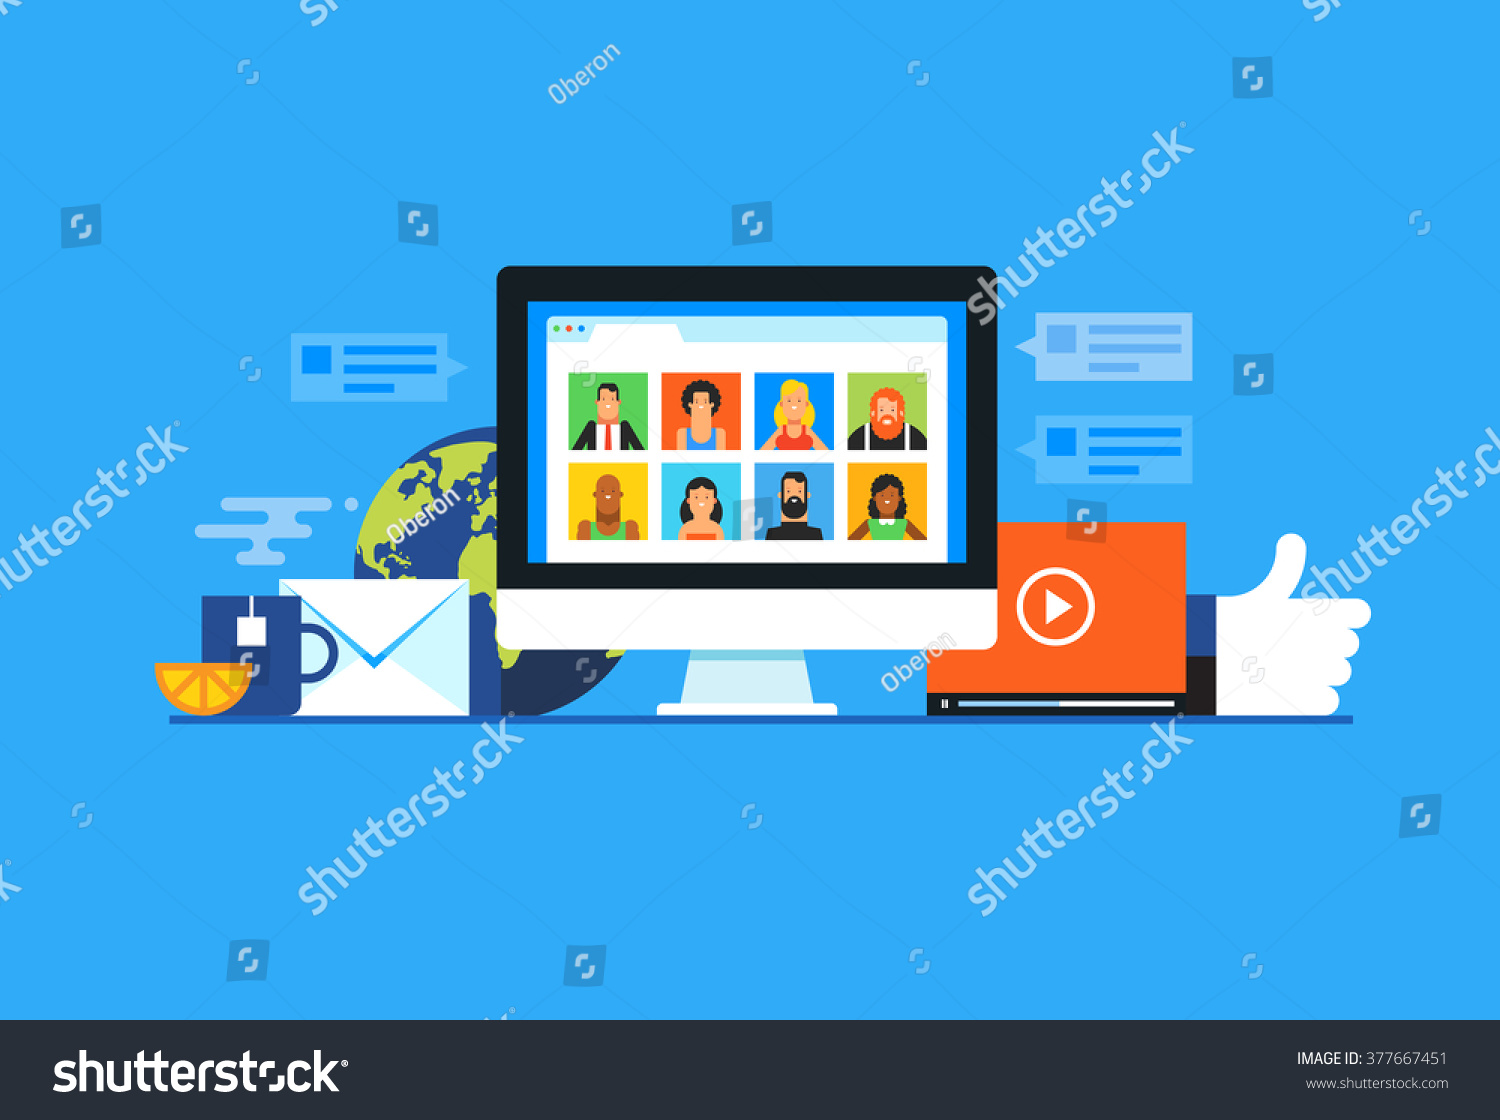 Social media. Flat design modern vector illustration concept. #377667451